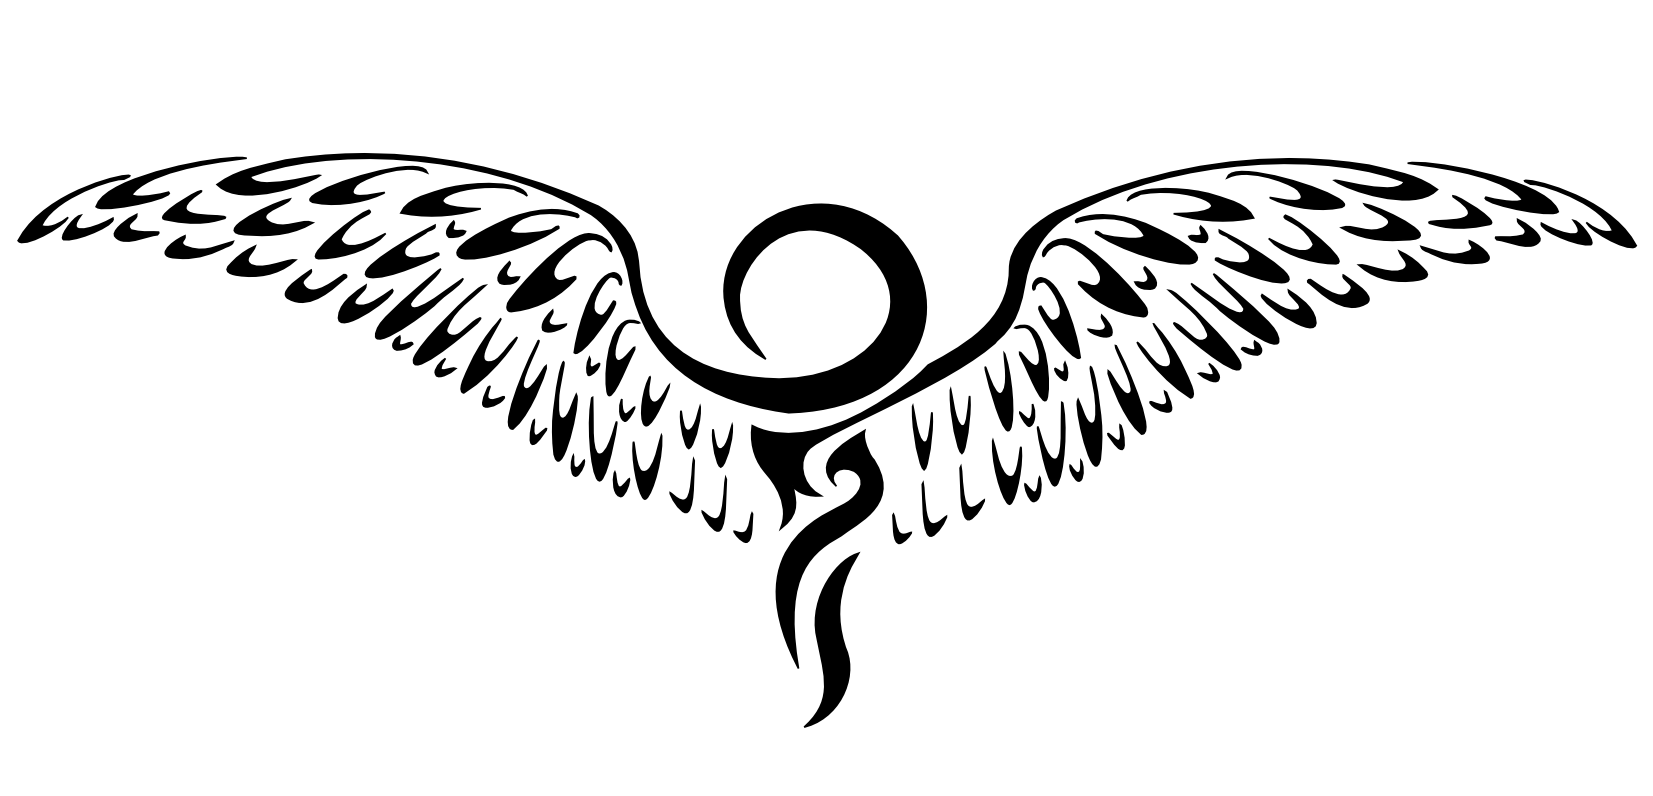 Winged Png - Winged tattoos png #19379 - Free Icons and PNG Backgrounds